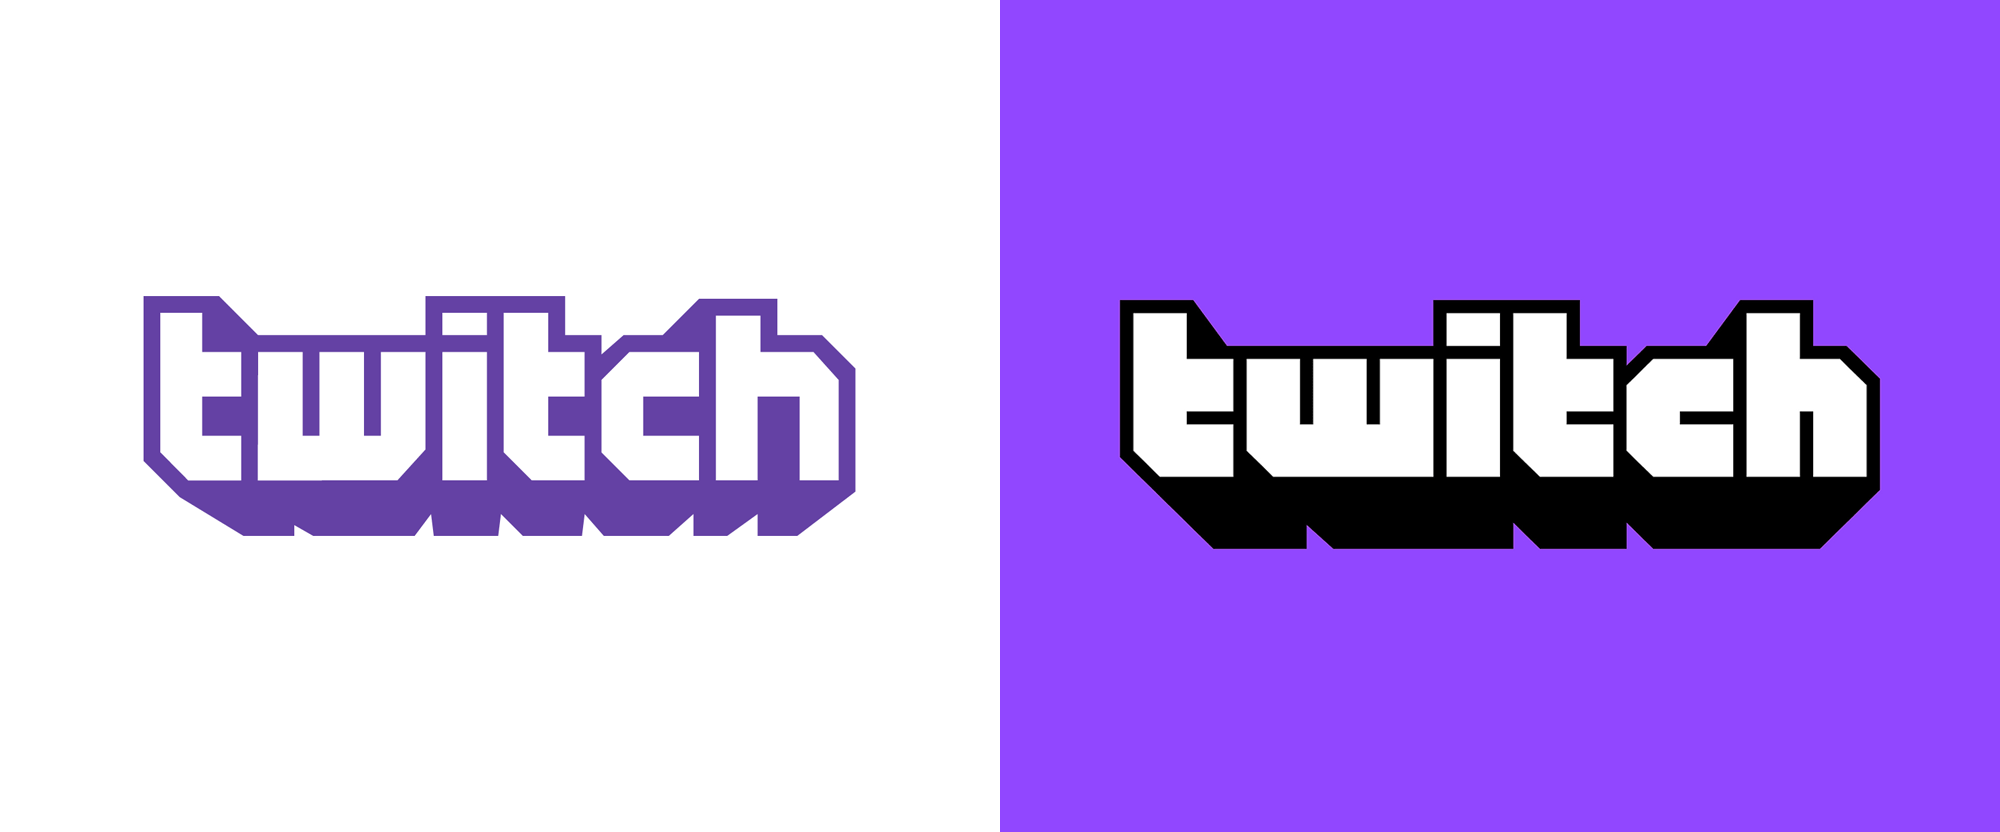 Brand New: New Logo And Identity For Twitch By Collins And In-house - Twitch Logo PNG